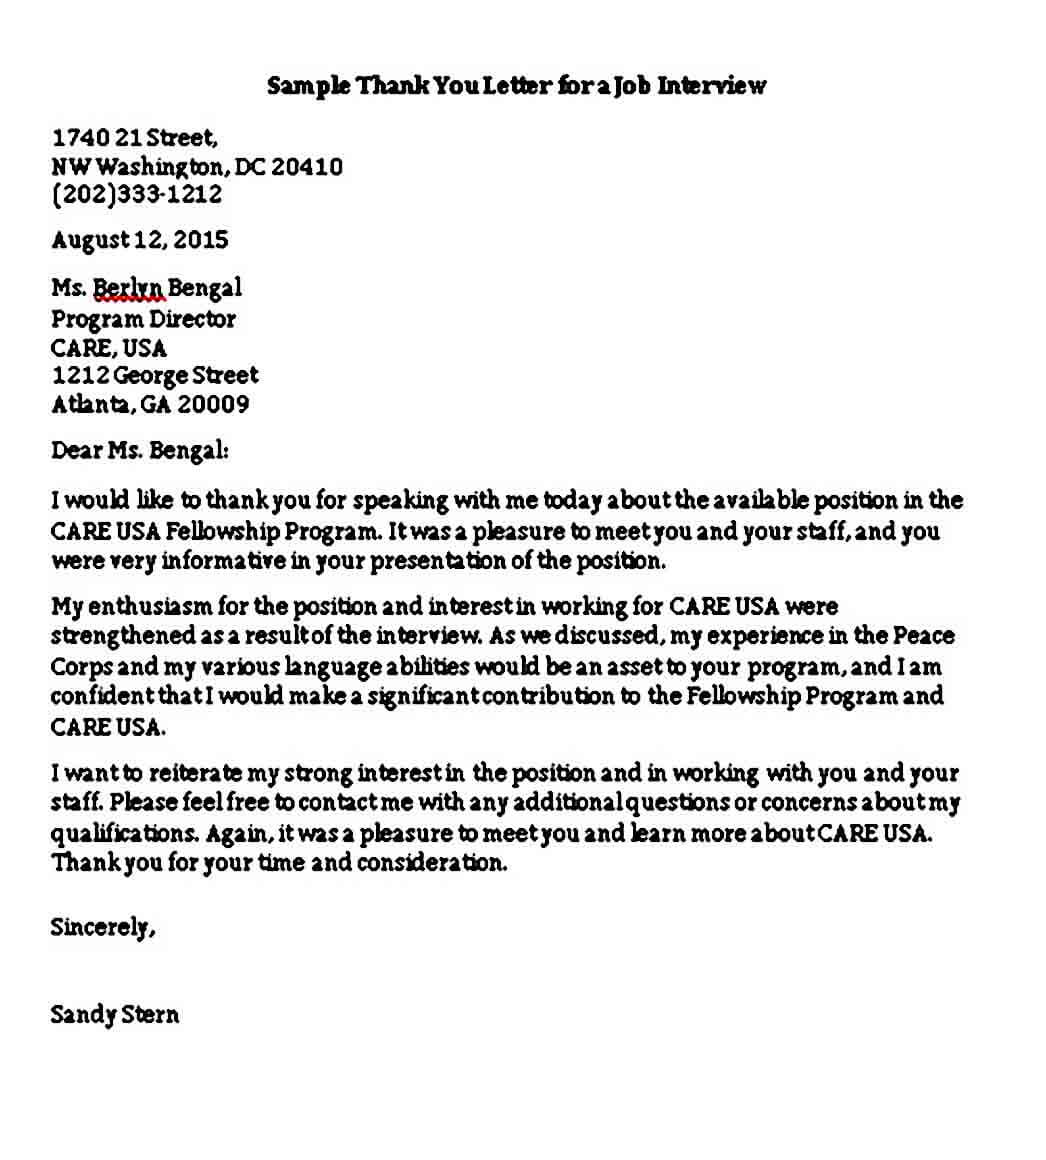 Sample Thank You Letter for a Job Interview